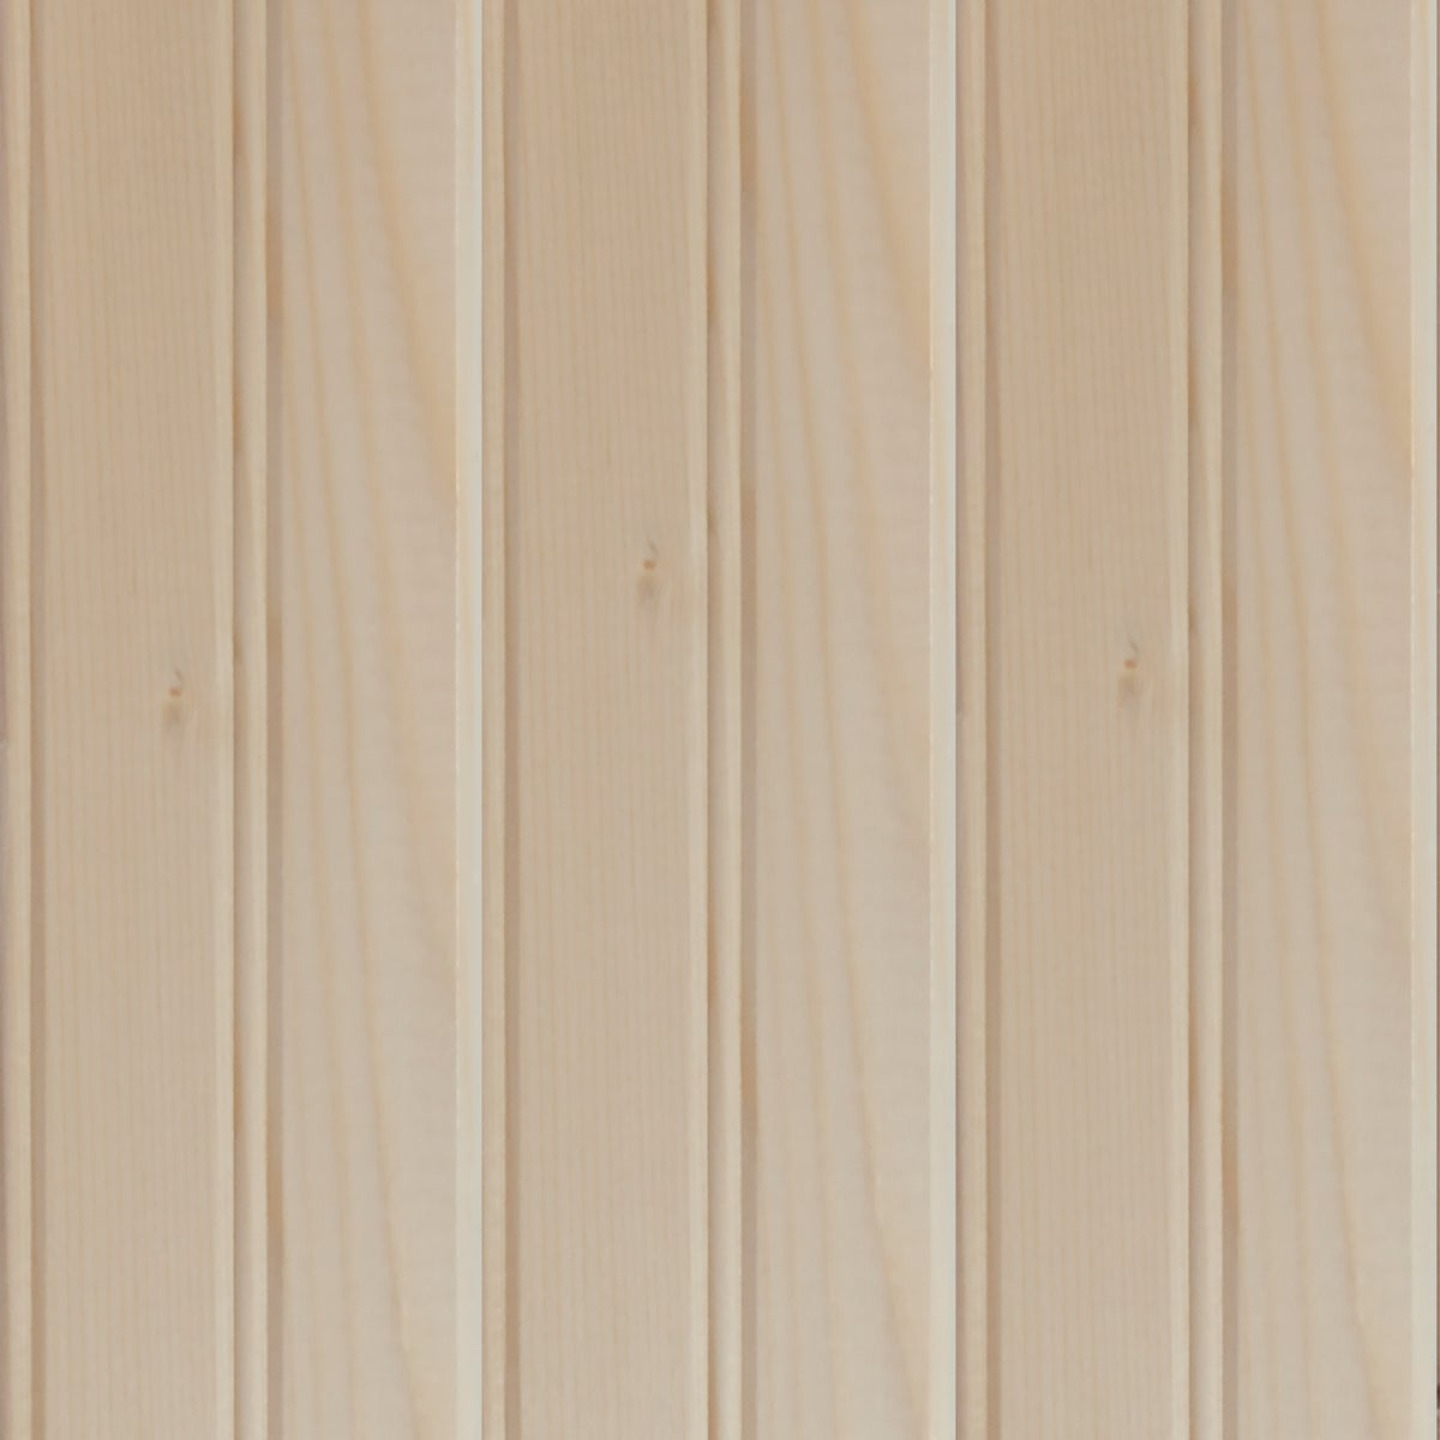 Global Product Sourcing 3-1/2 In. W. x 8 Ft. L. x 5/16 In. Thick Knotty Pine Reversible Profile Wall Plank (6-Pack) Image 1